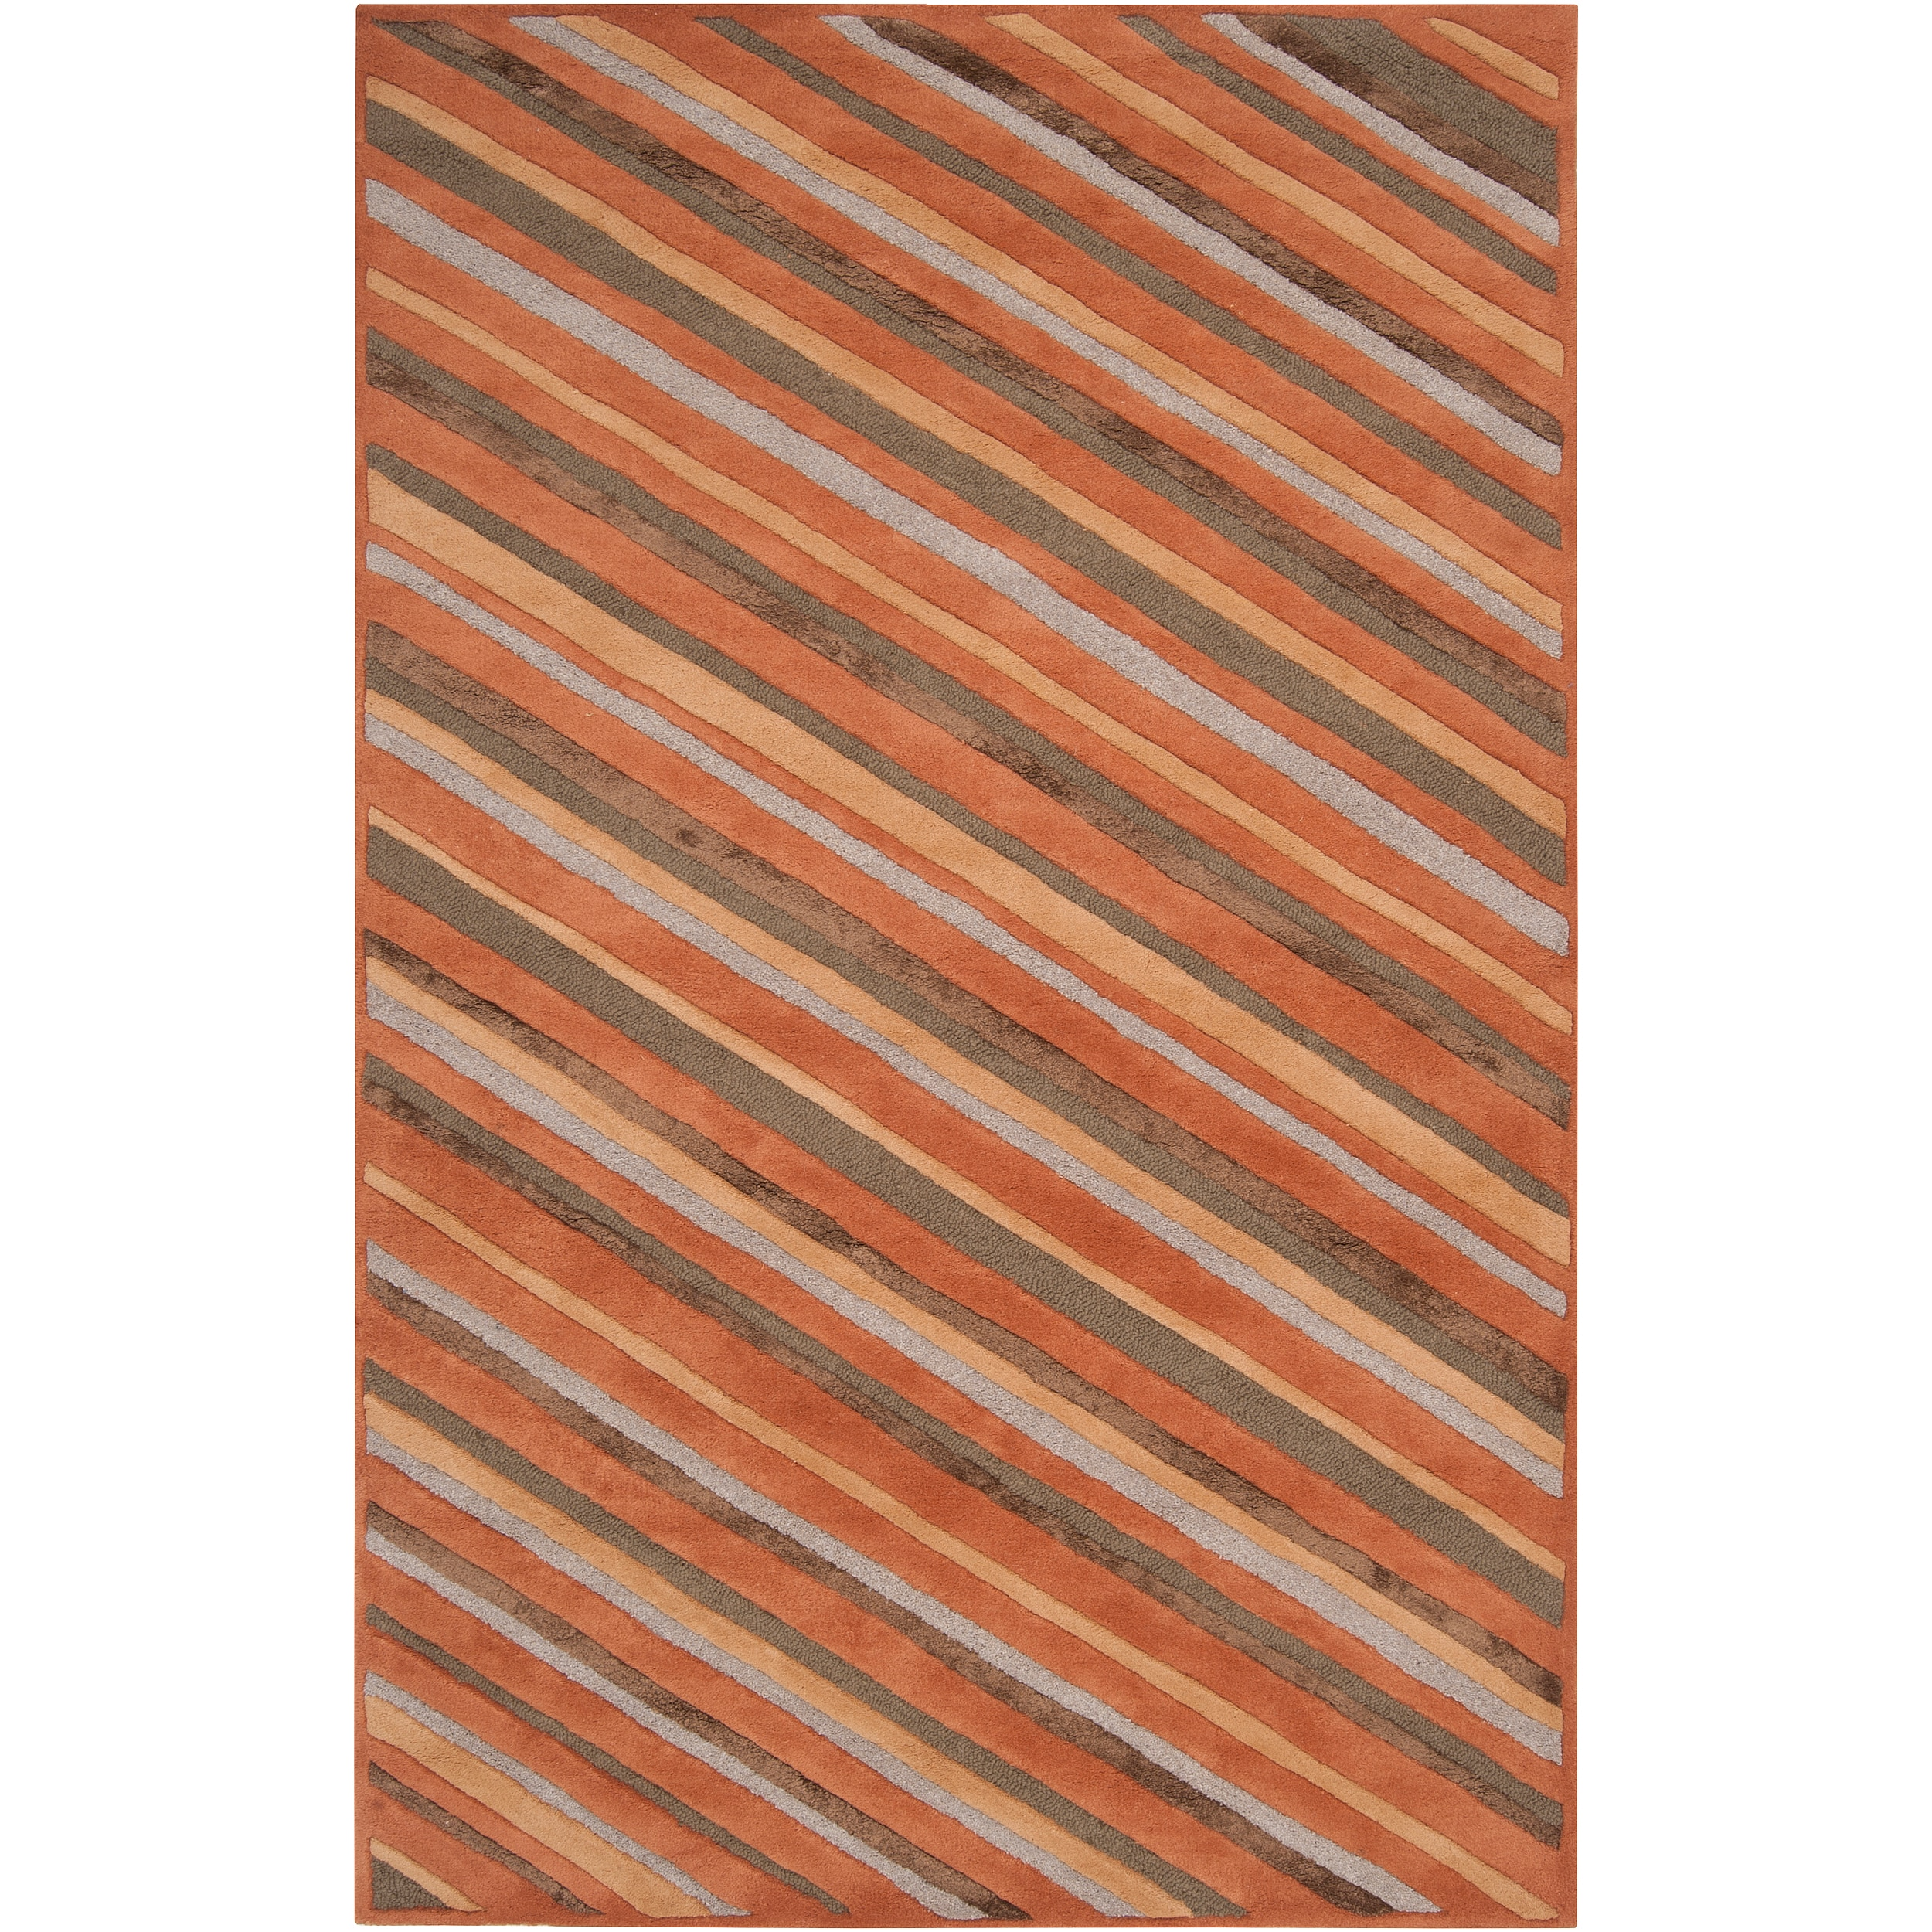 Candice Olson Hand-tufted Brown Cane Diagonal Stripes Wool Rug (9' x 13')